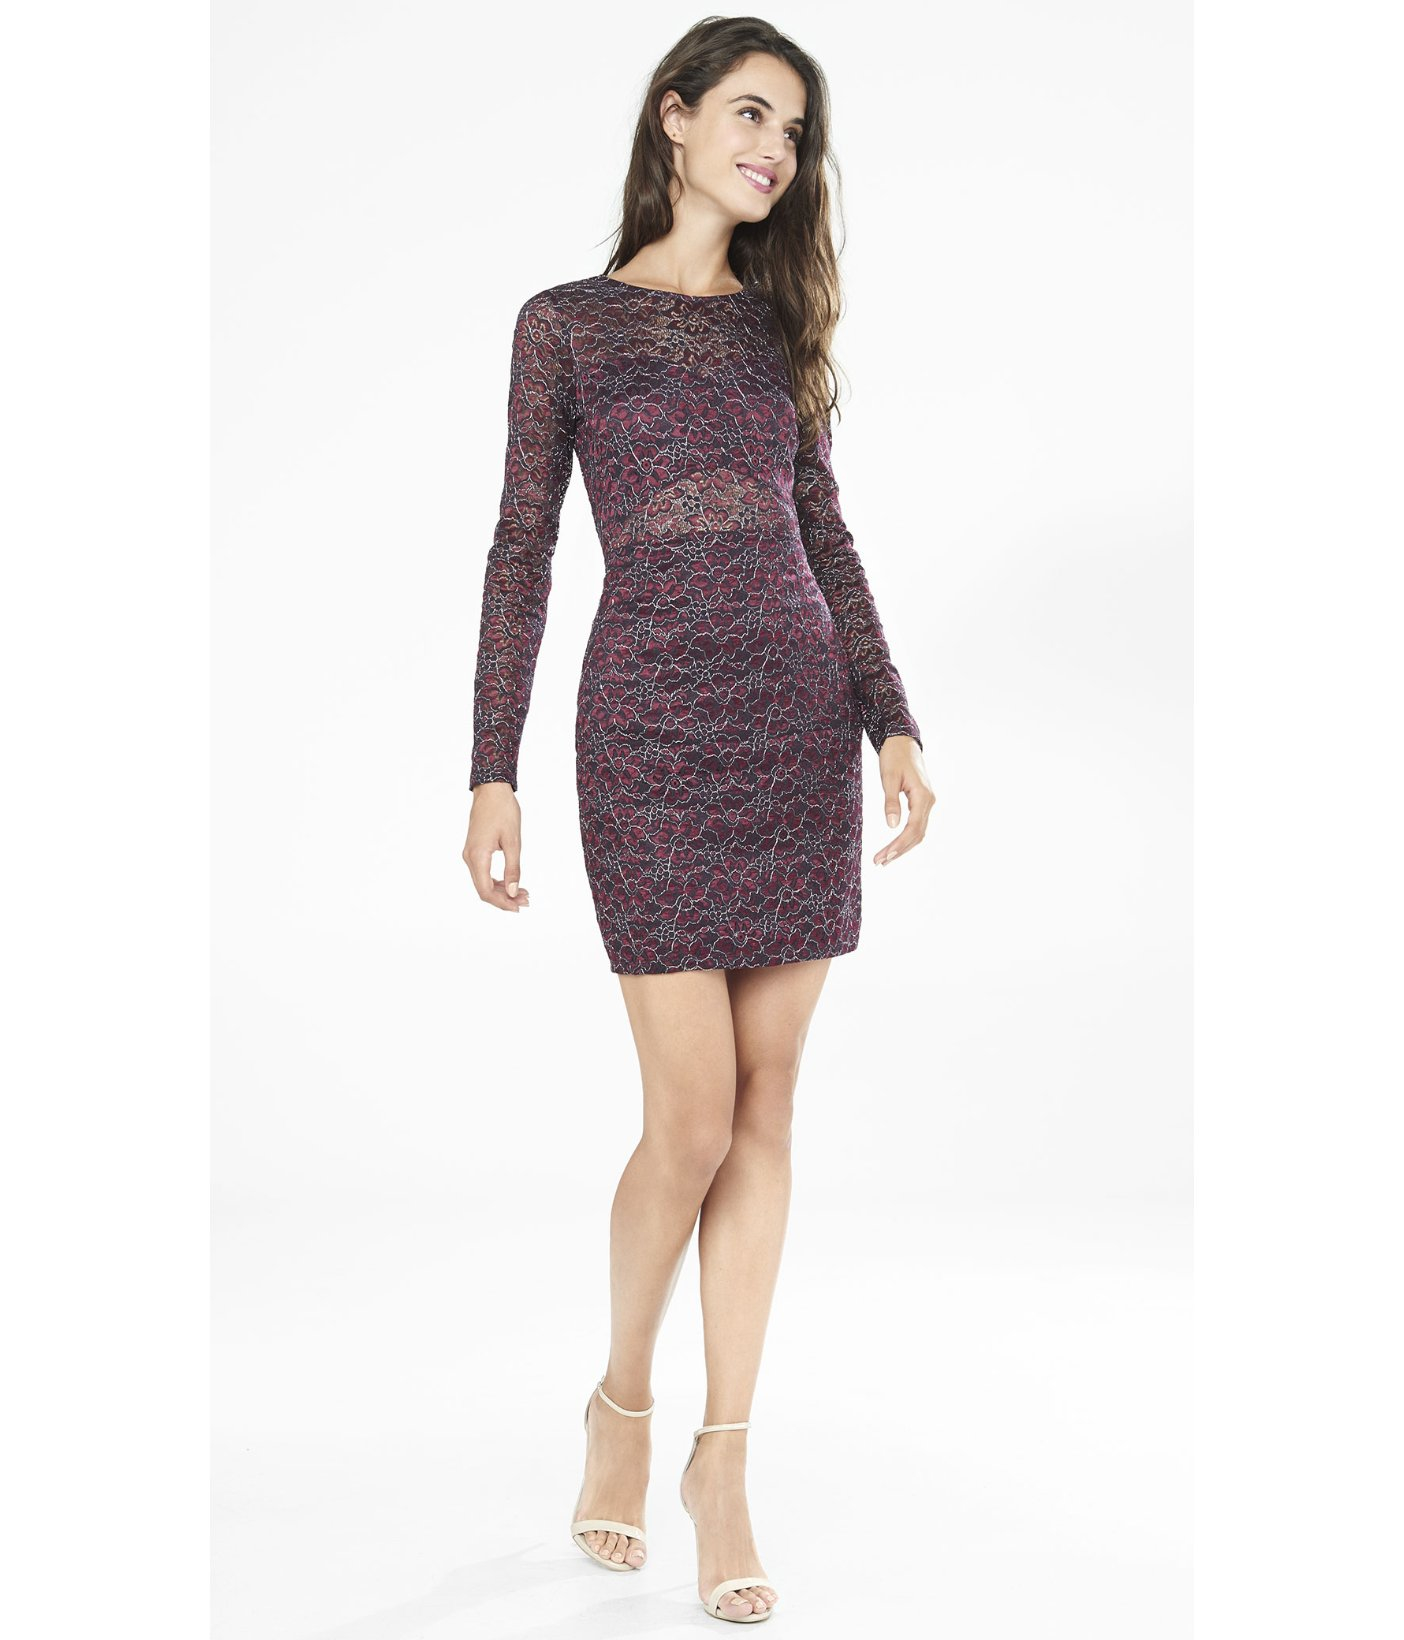 c19a1beb1e0 Dark Purple Lace Dress With Sleeves